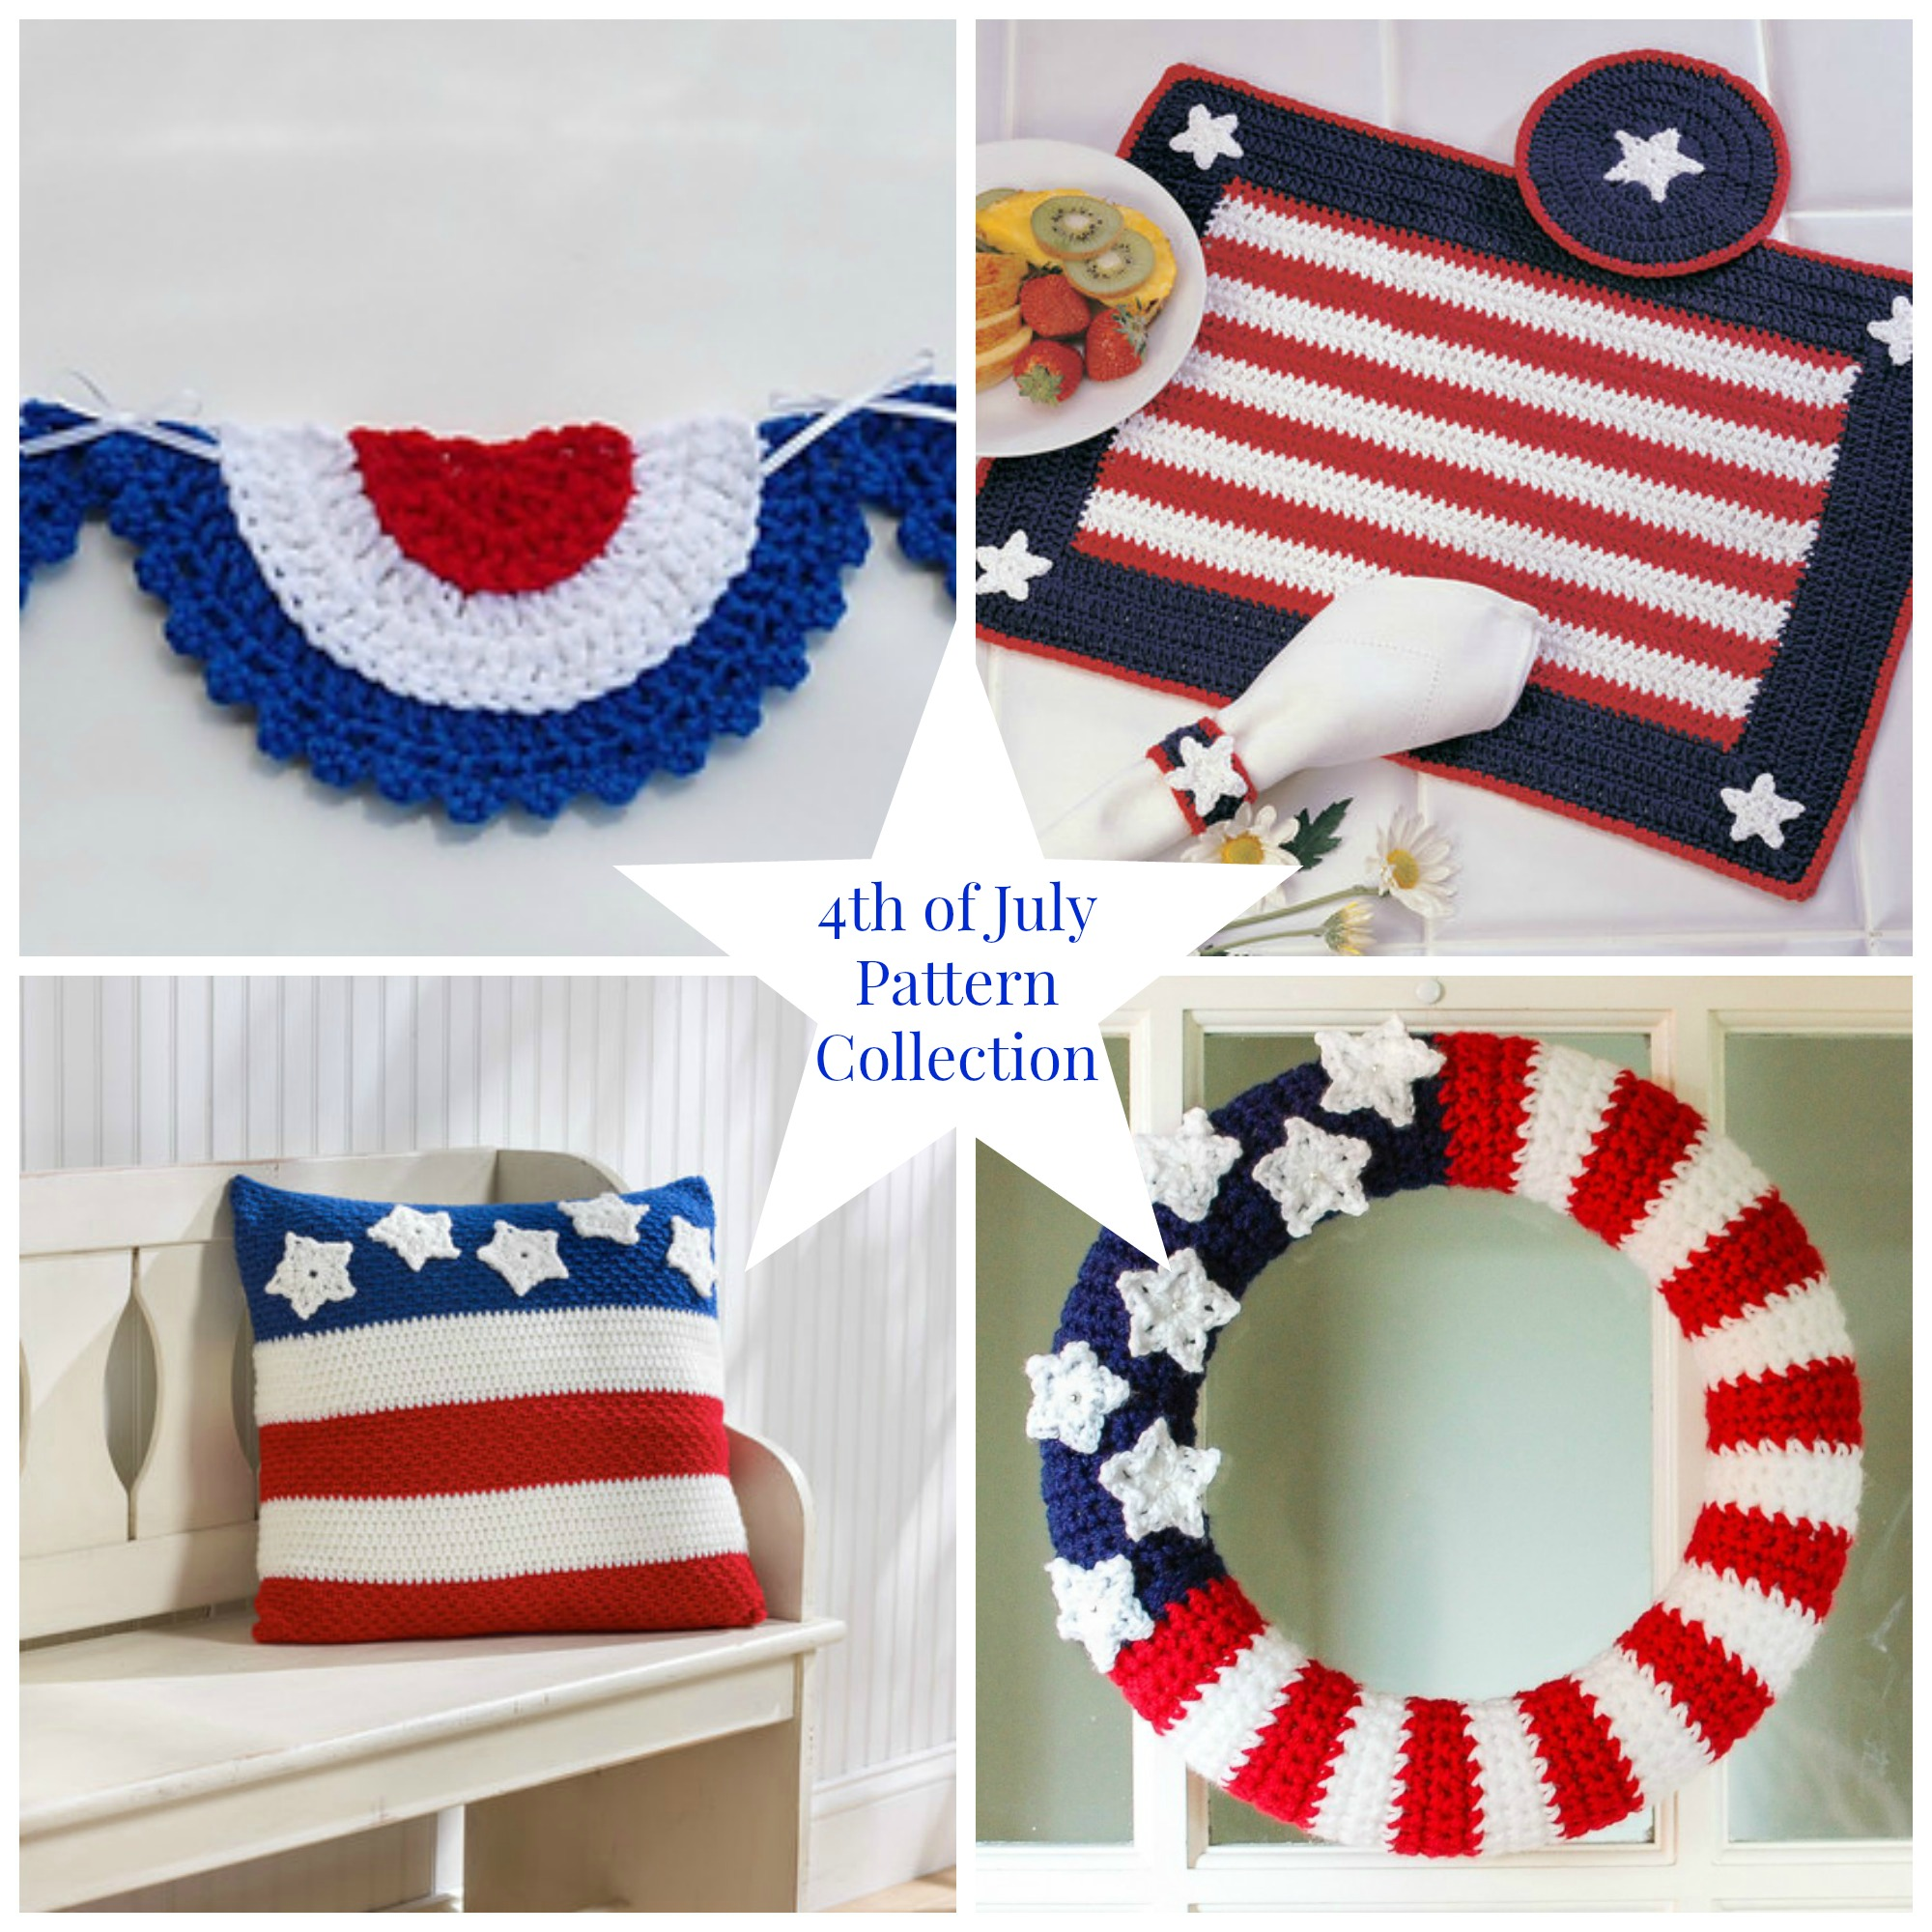 4th of July Crochet Patterns Round Up